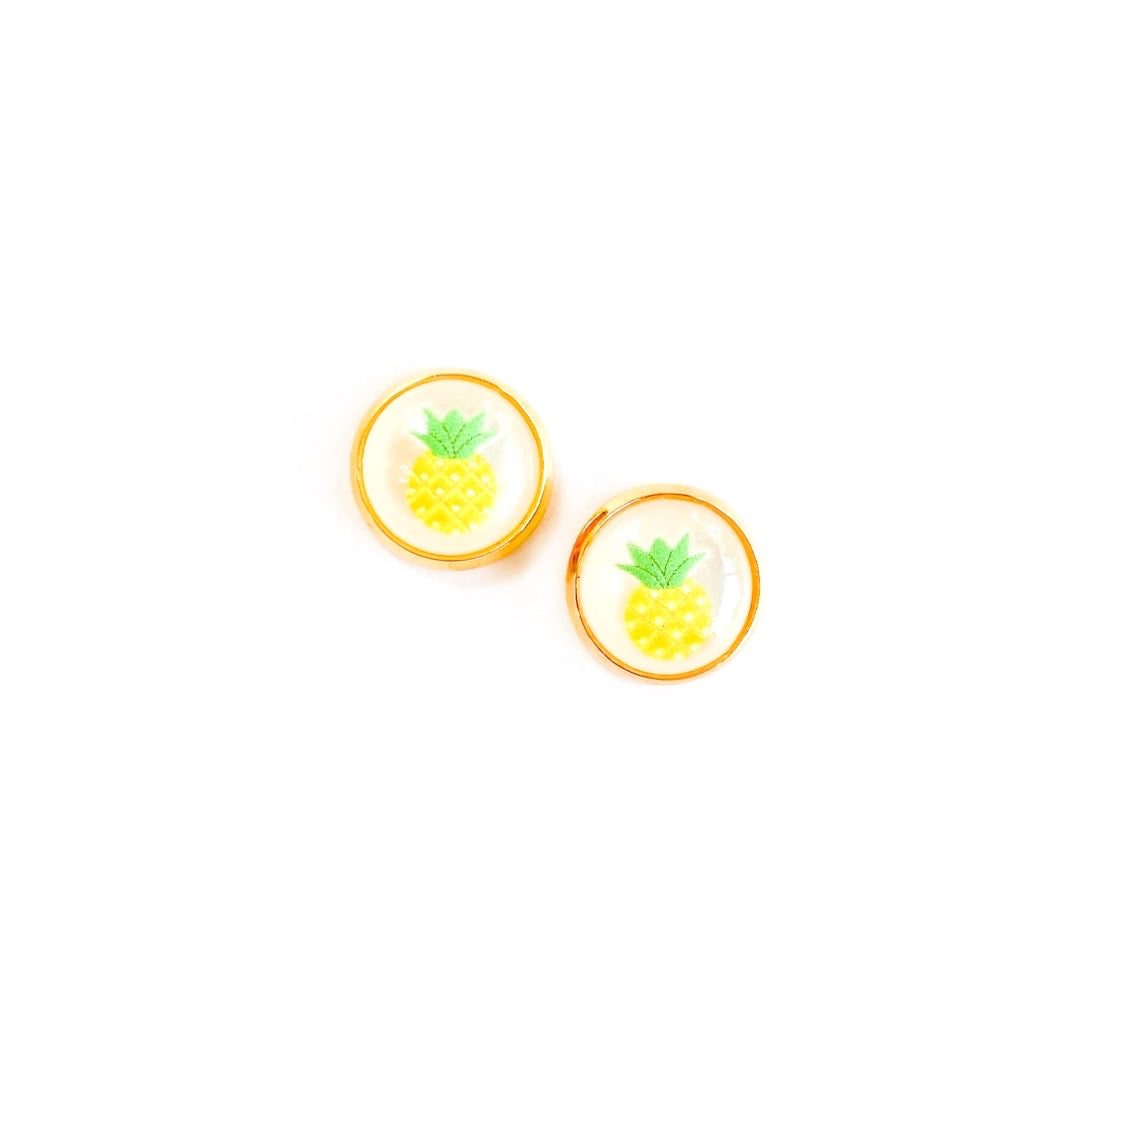 Pineapple in Gold - 12mm Dome Studs